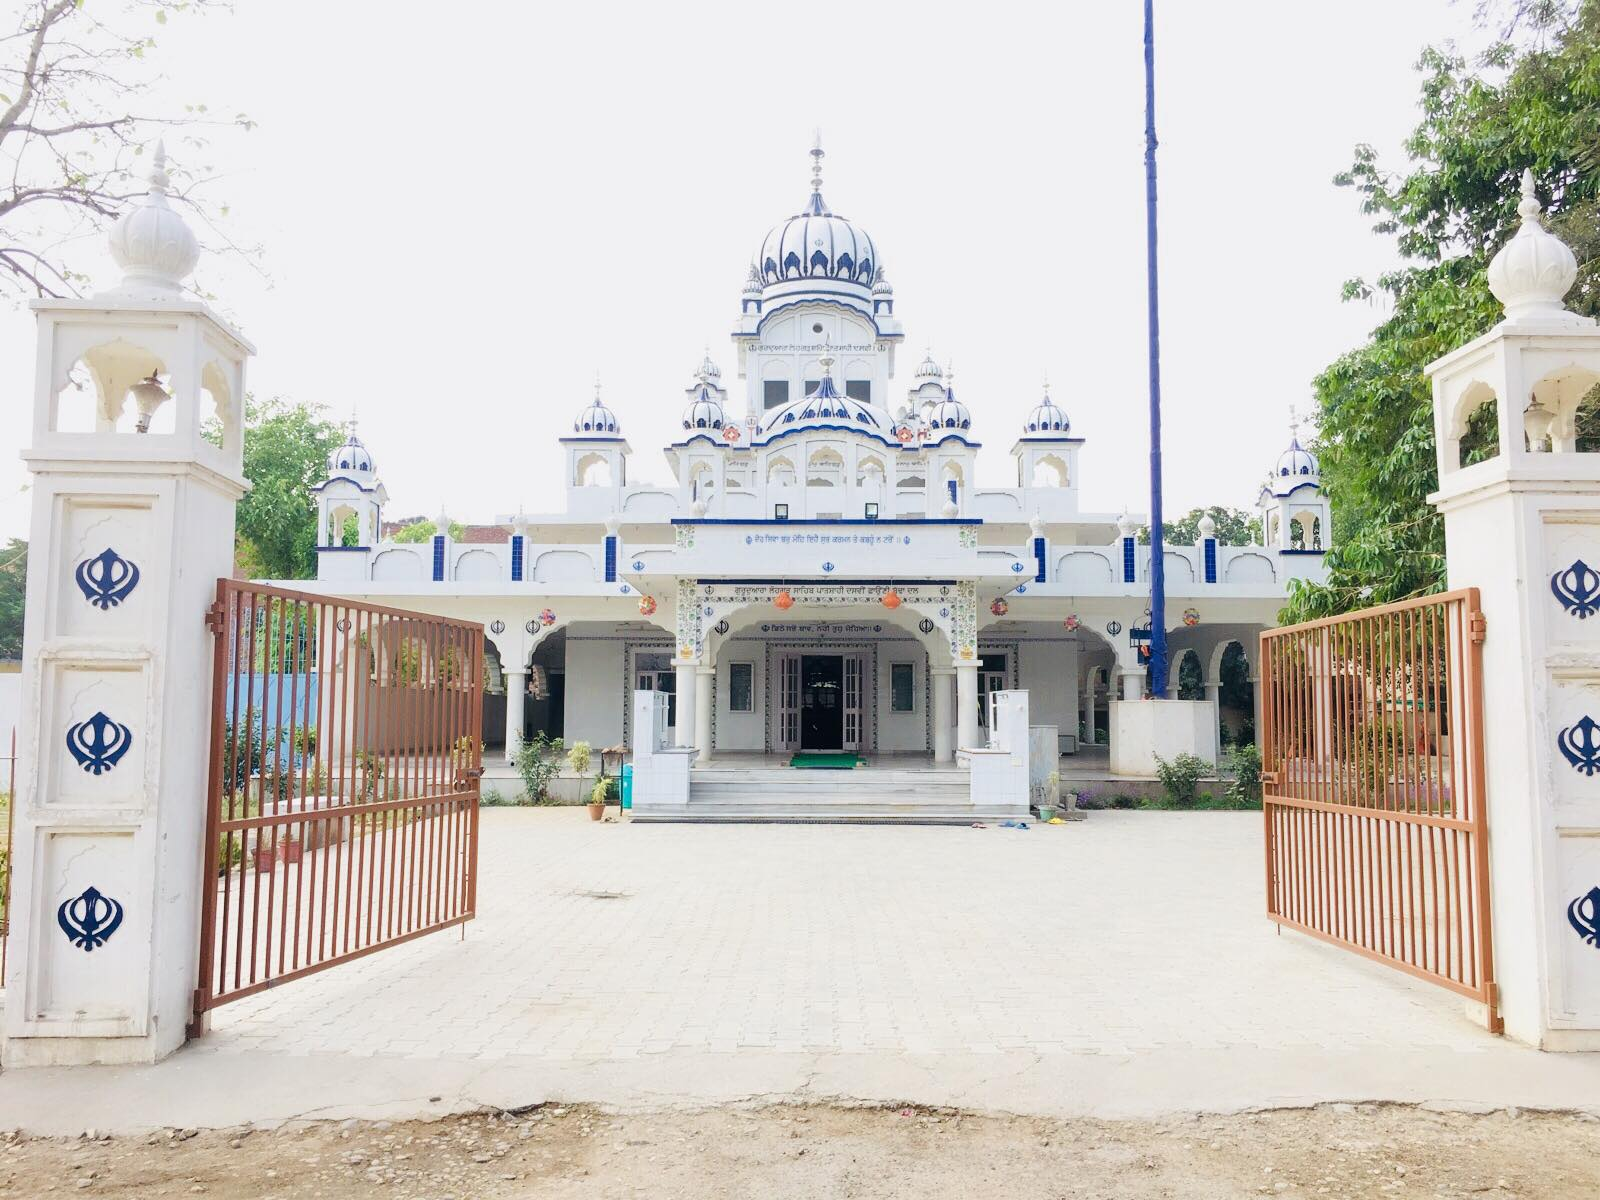 Gurudwara Lohgarh Sahib - Top-Rated Place to Visit in Moga